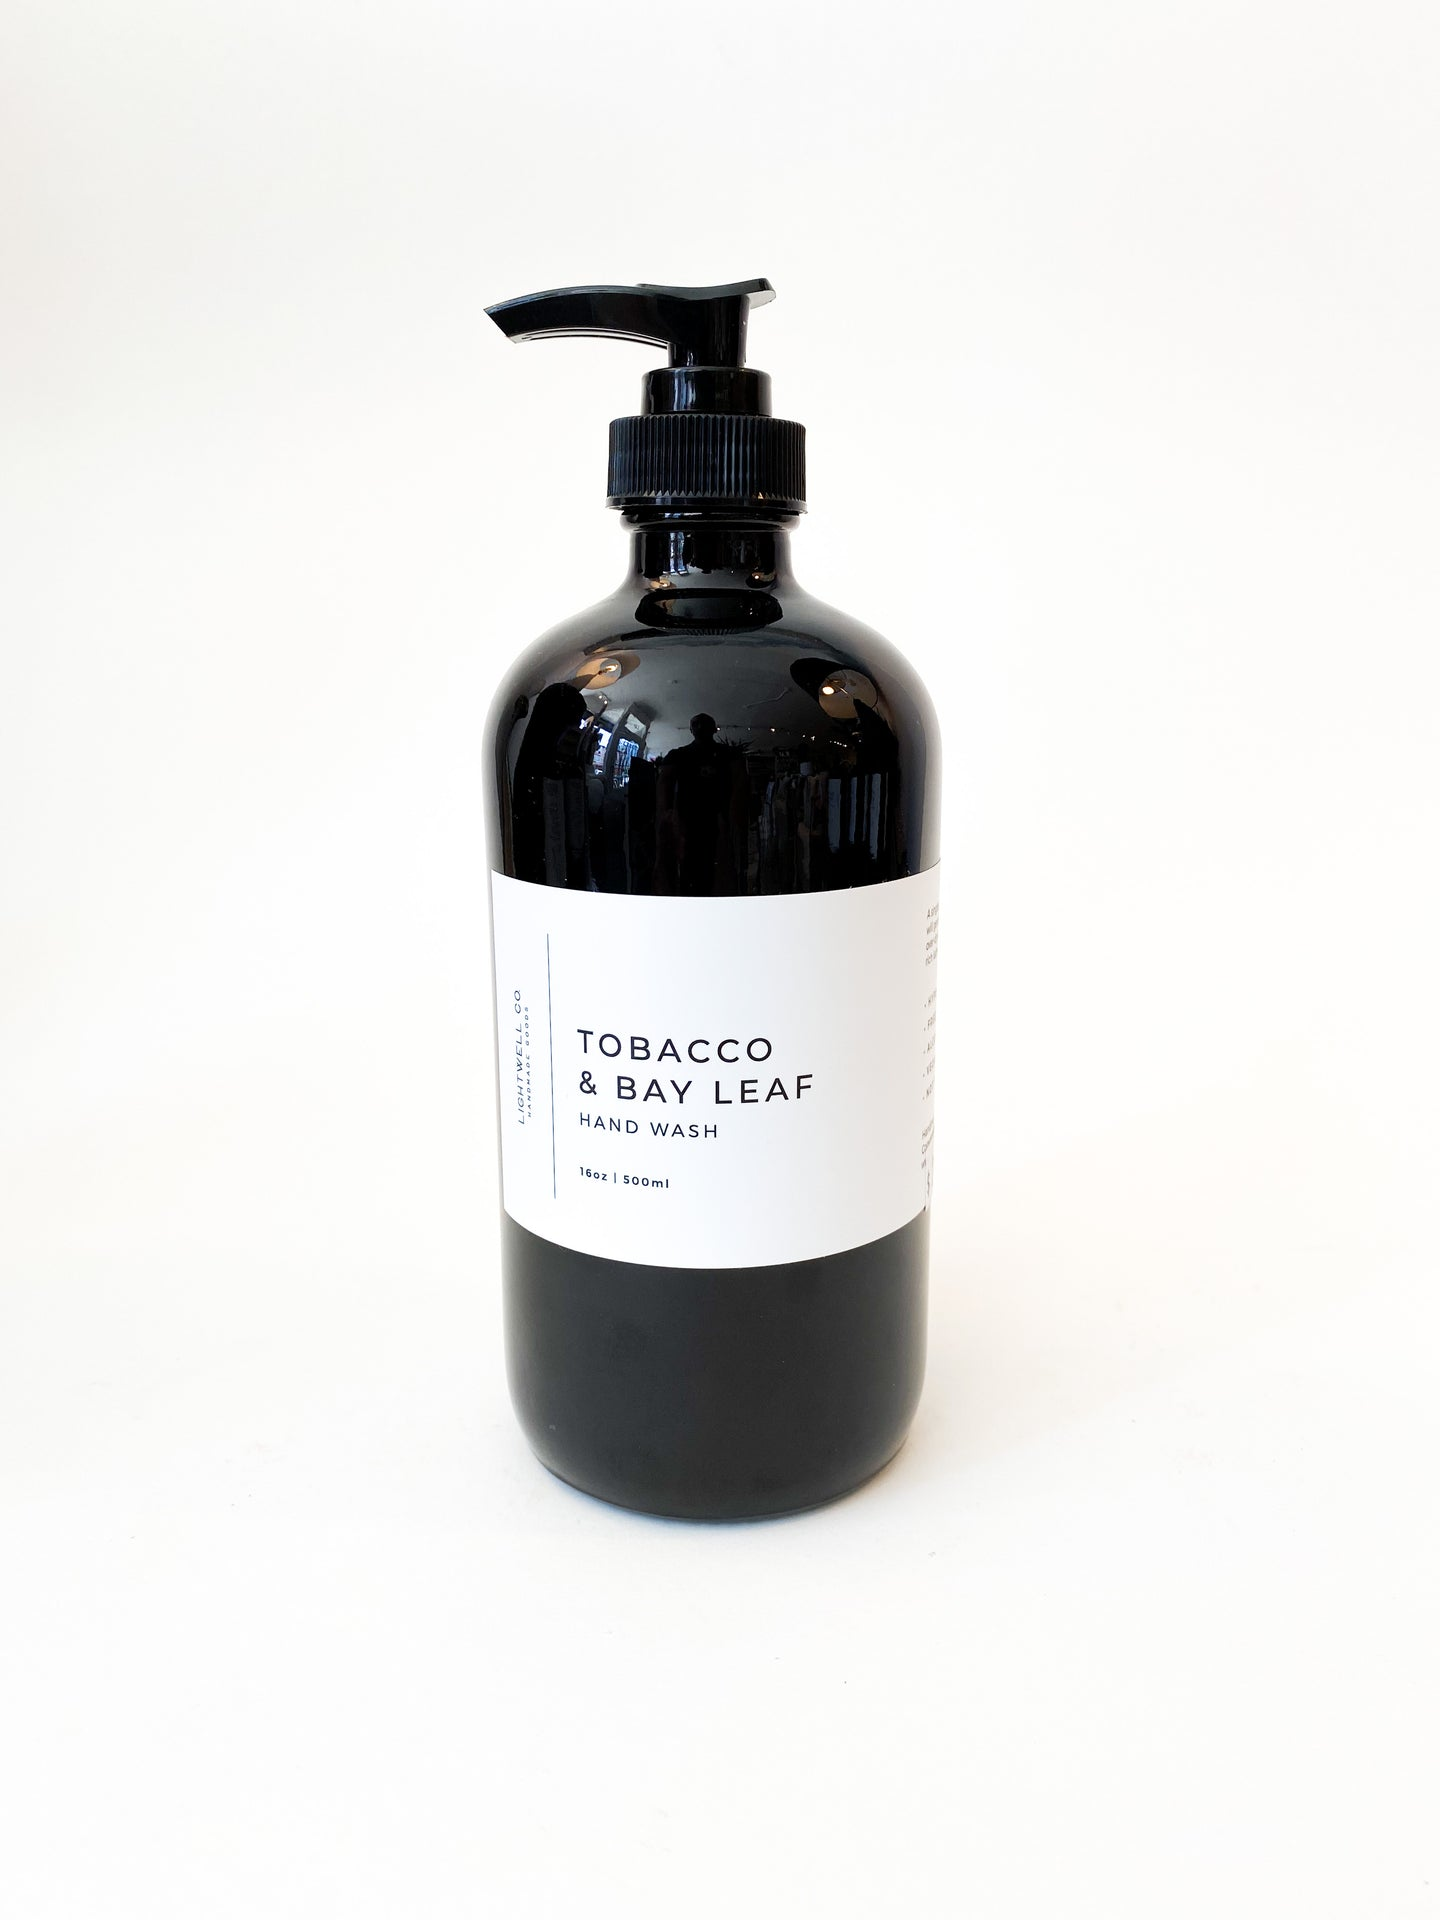 HAND WASH - TOBACCO & BAY LEAF